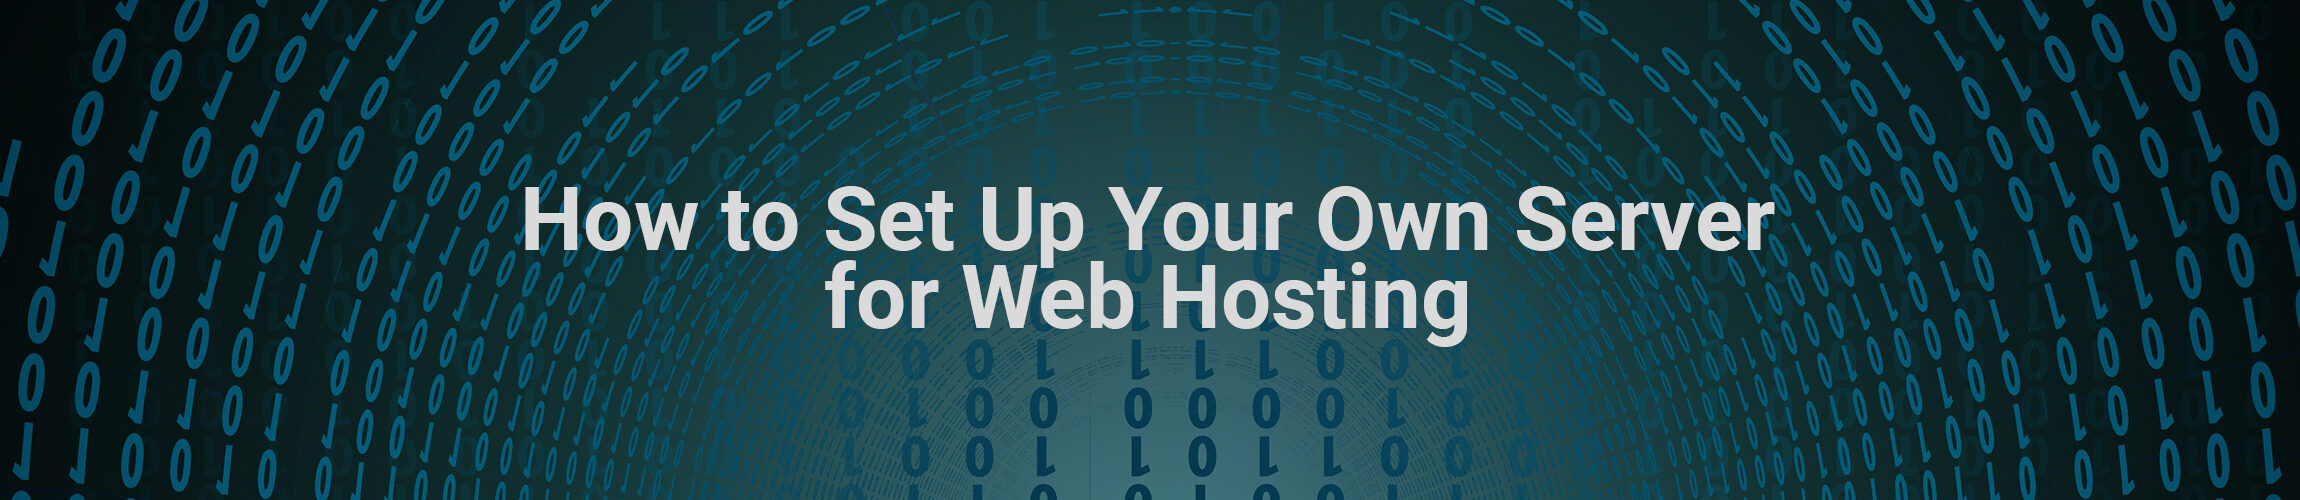 How to Set Up Your Own Server for Web Hosting